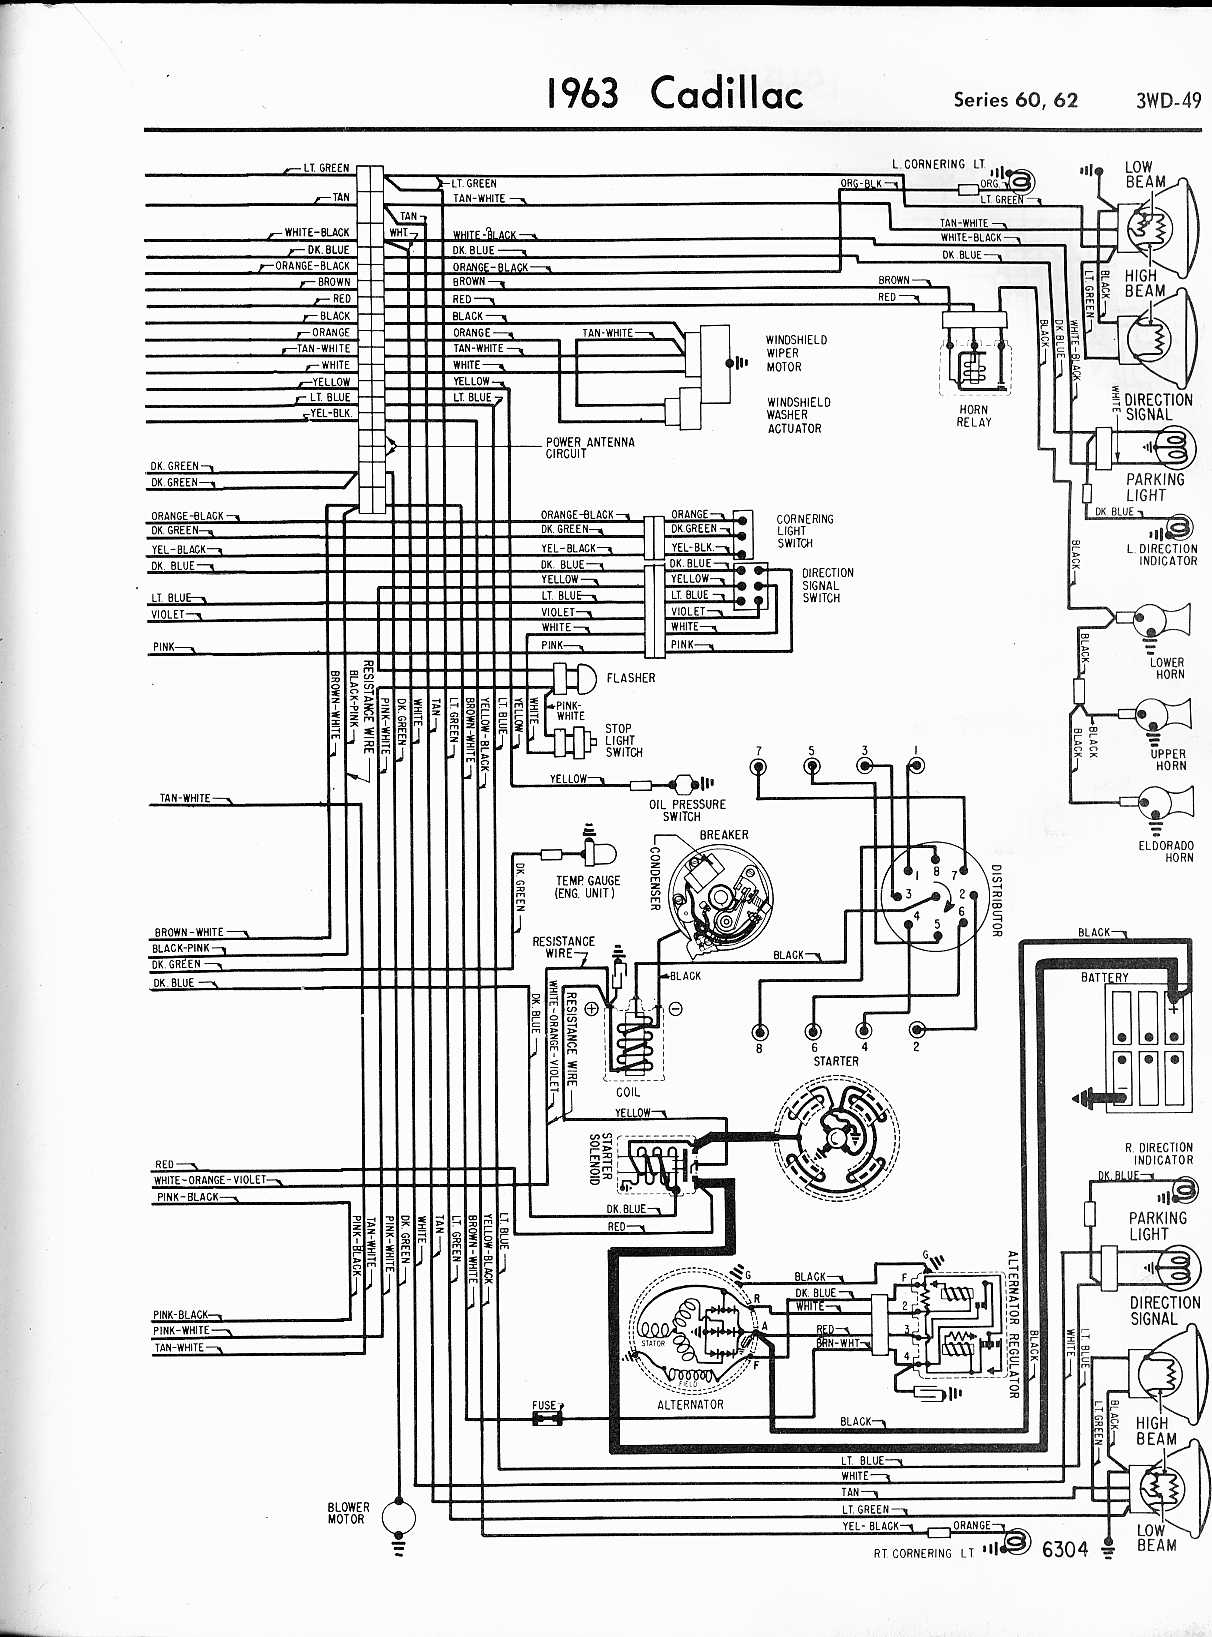 [QNCB_7524]  DIAGRAM] 1999 Cadillac Catera Engine Diagram FULL Version HD Quality Engine  Diagram - LINDIAGRAM.ARTEMISMAIL.FR | Cadillac Engine Wiring Diagram |  | Diagram Database